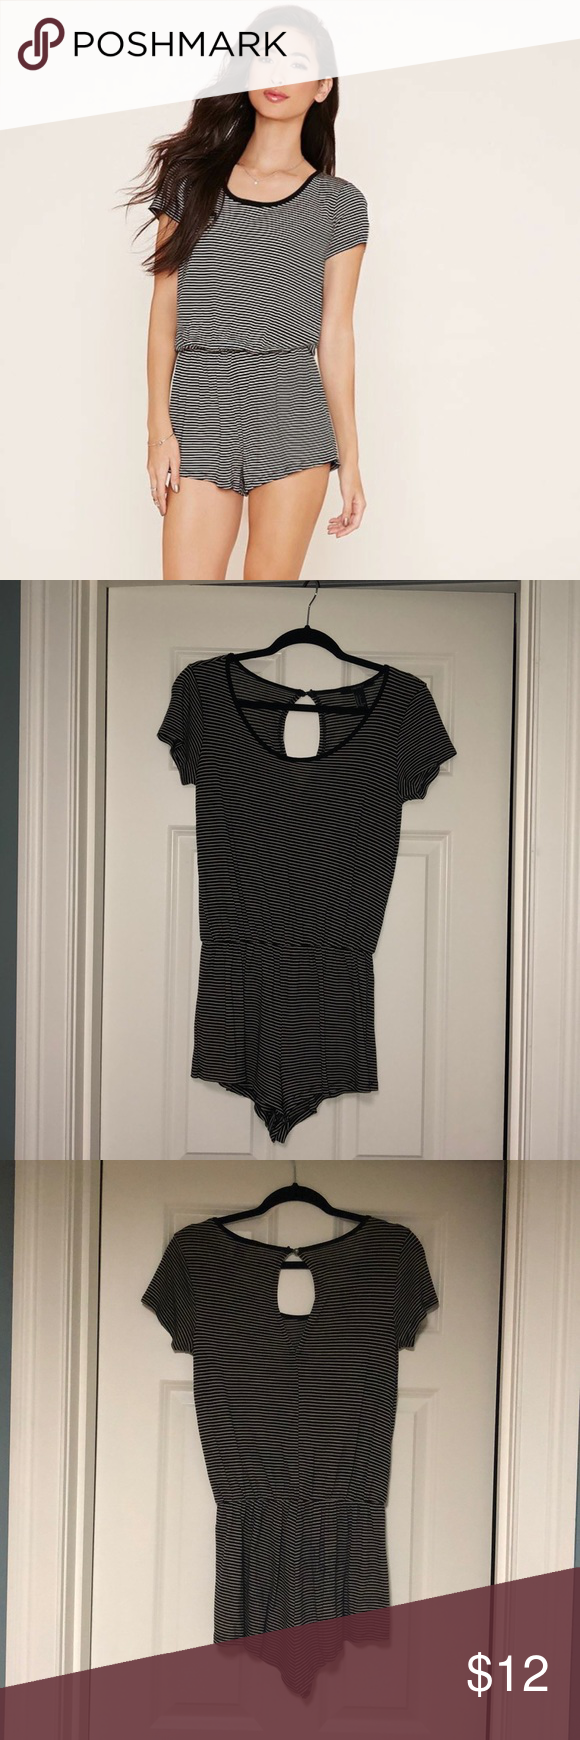 4d422732fc5d Forever 21 Striped Keyhole Romper Small Super comfy black and cream striped  short sleeved romper!! Perfect to throw on for any occasion!